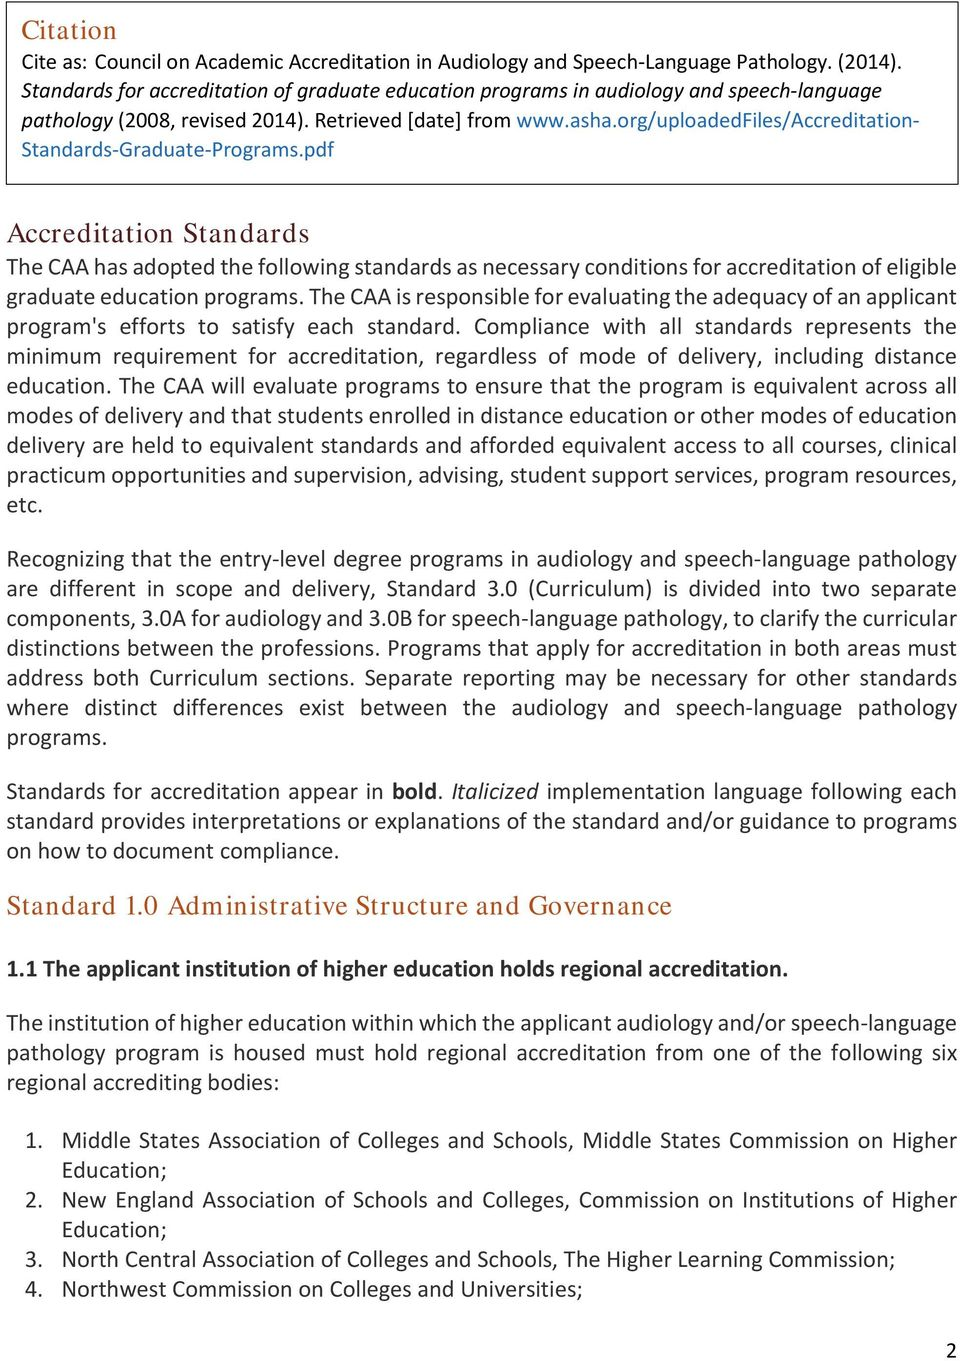 org/uploadedfiles/accreditation- Standards-Graduate-Programs.